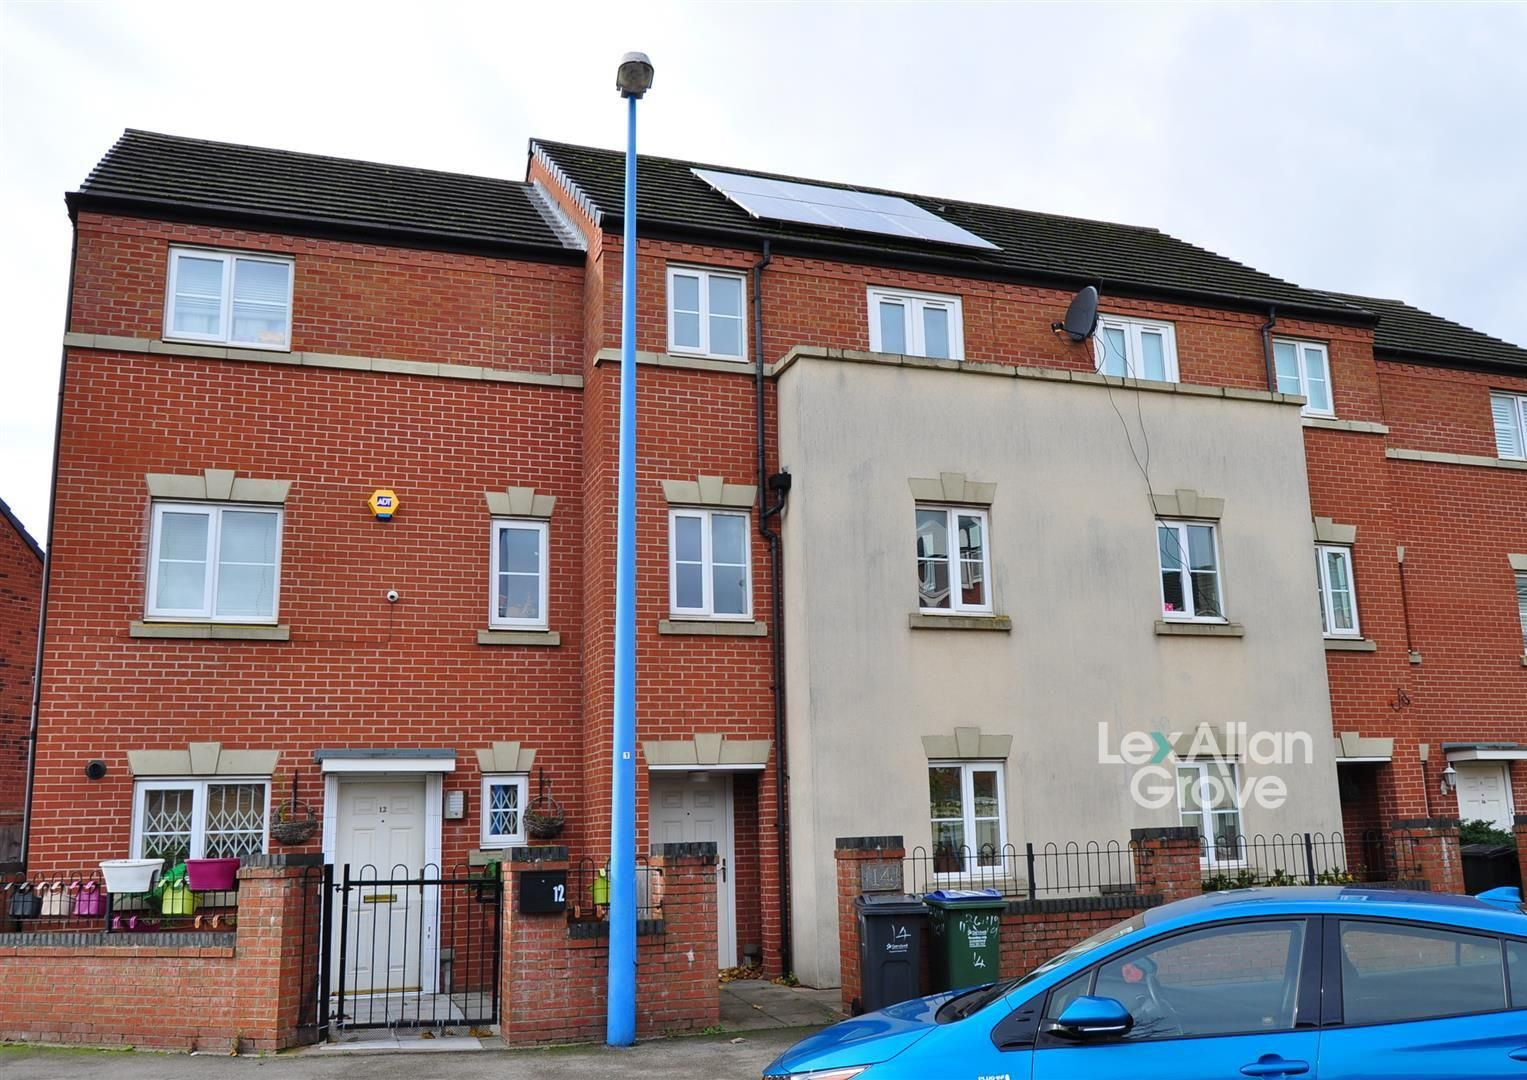 4 bed terraced for sale, B66